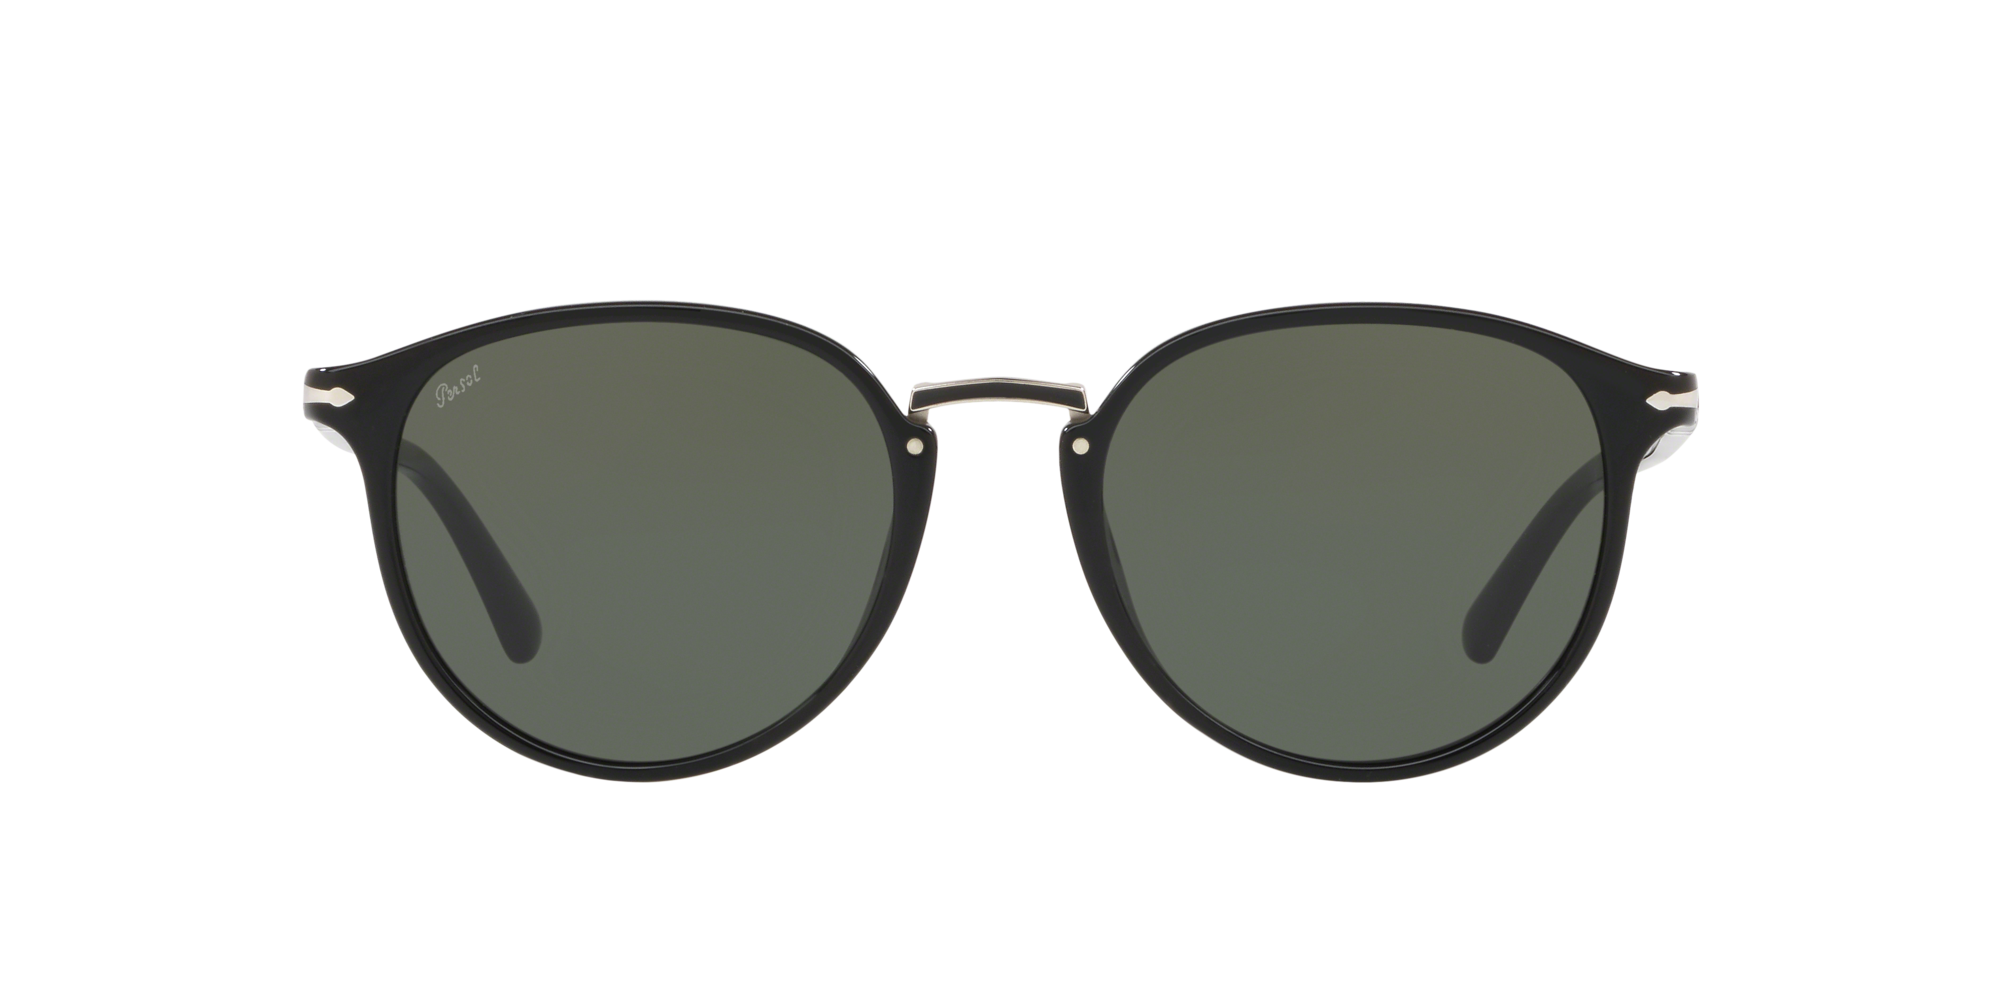 Italy Persol Typewriter Edition Men/'s Rounded Sunglasses PO3210S 106151